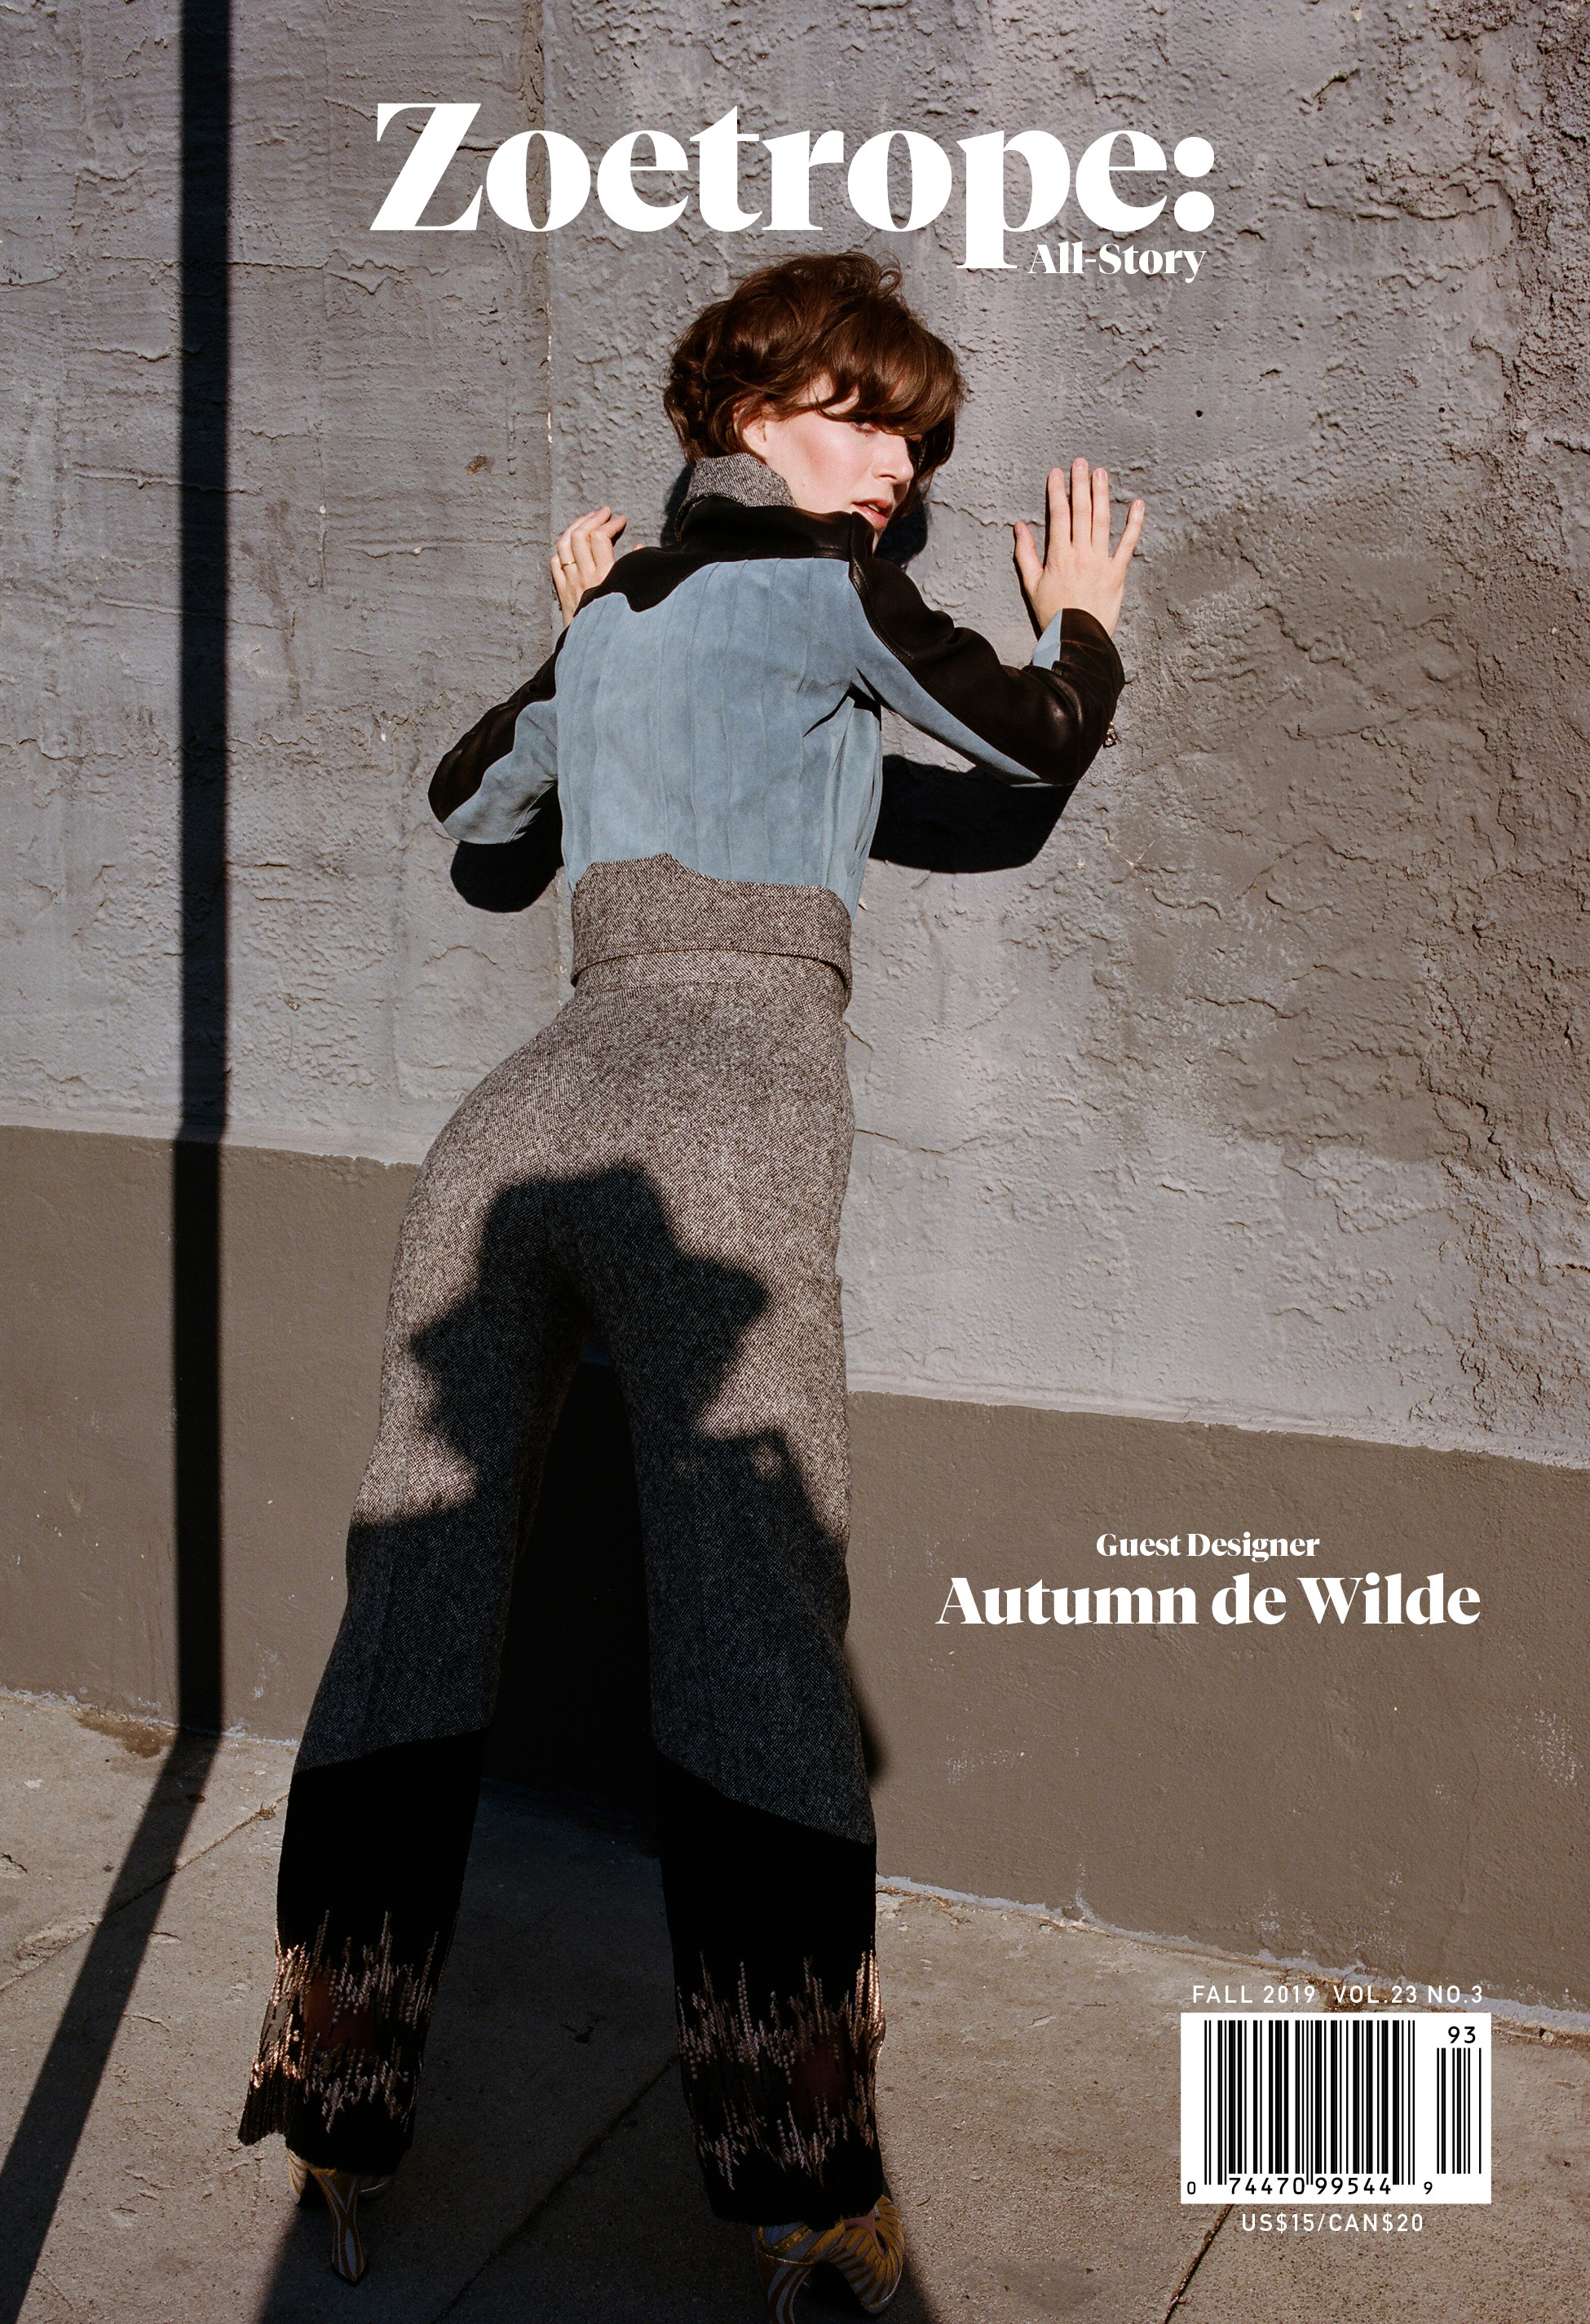 Full Cover for current issue designed by Autumn de Wilde